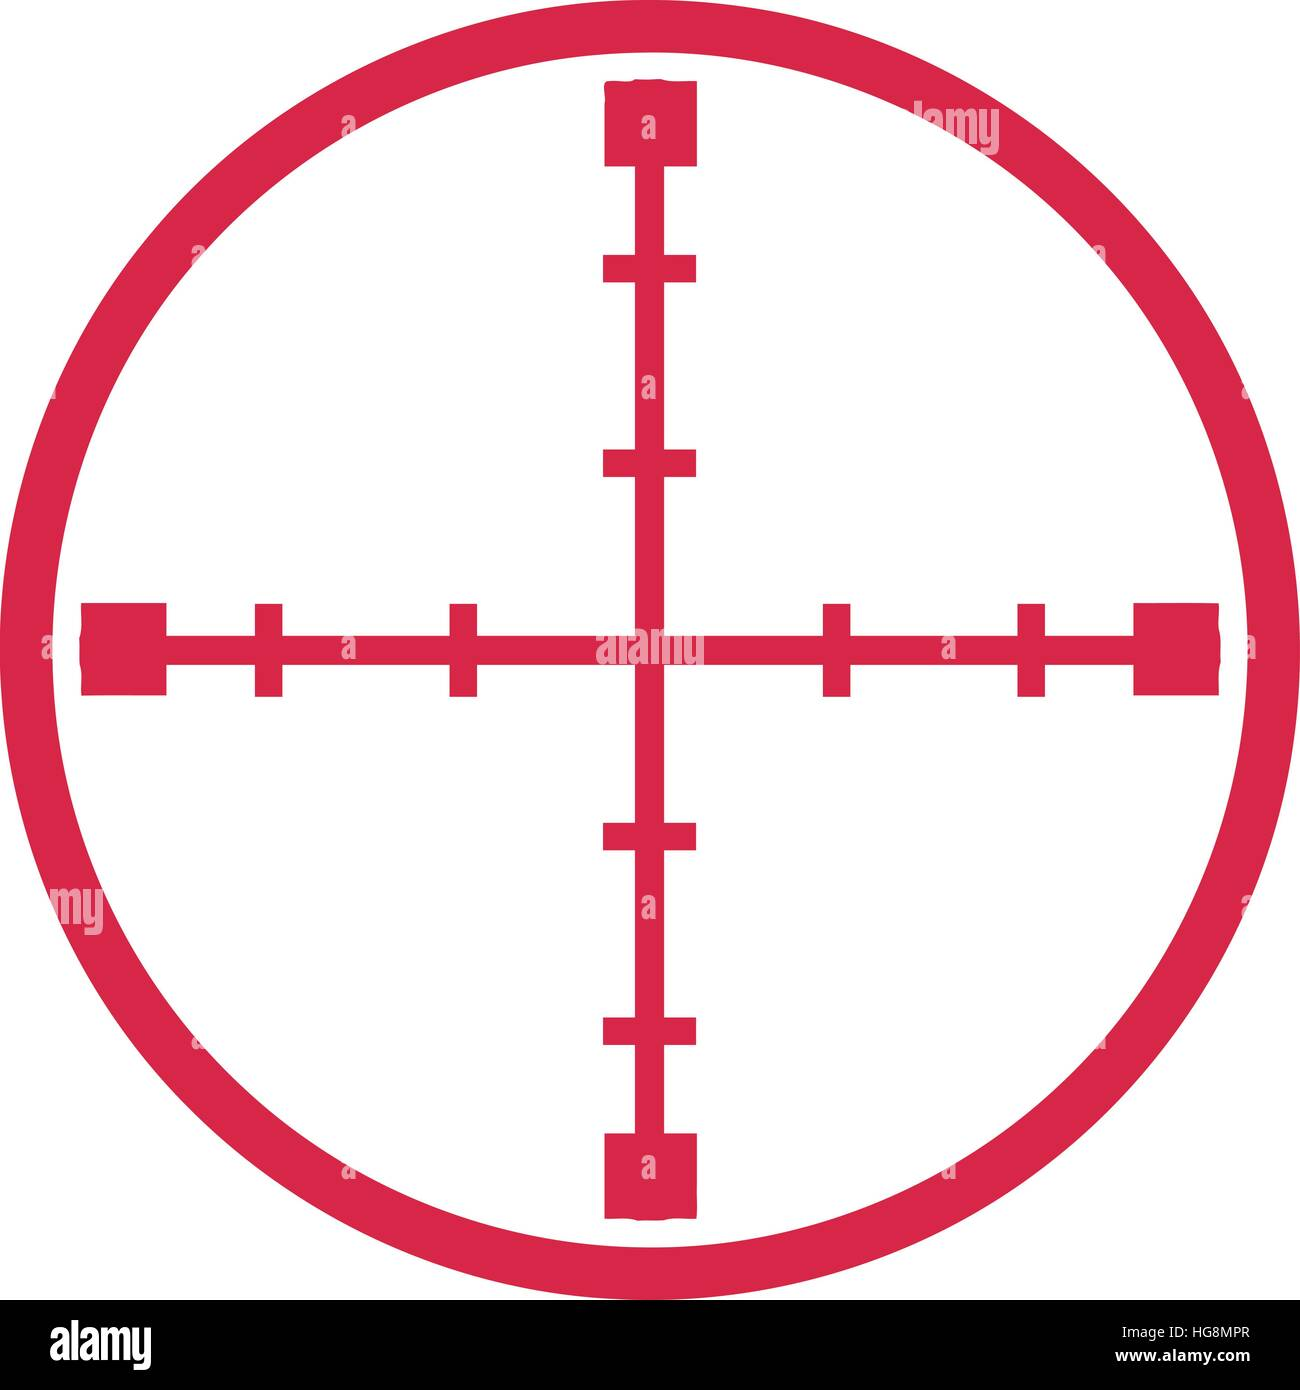 sniper target crosshair stock vector art illustration vector rh alamy com crosshair vector logo crosshair vector free